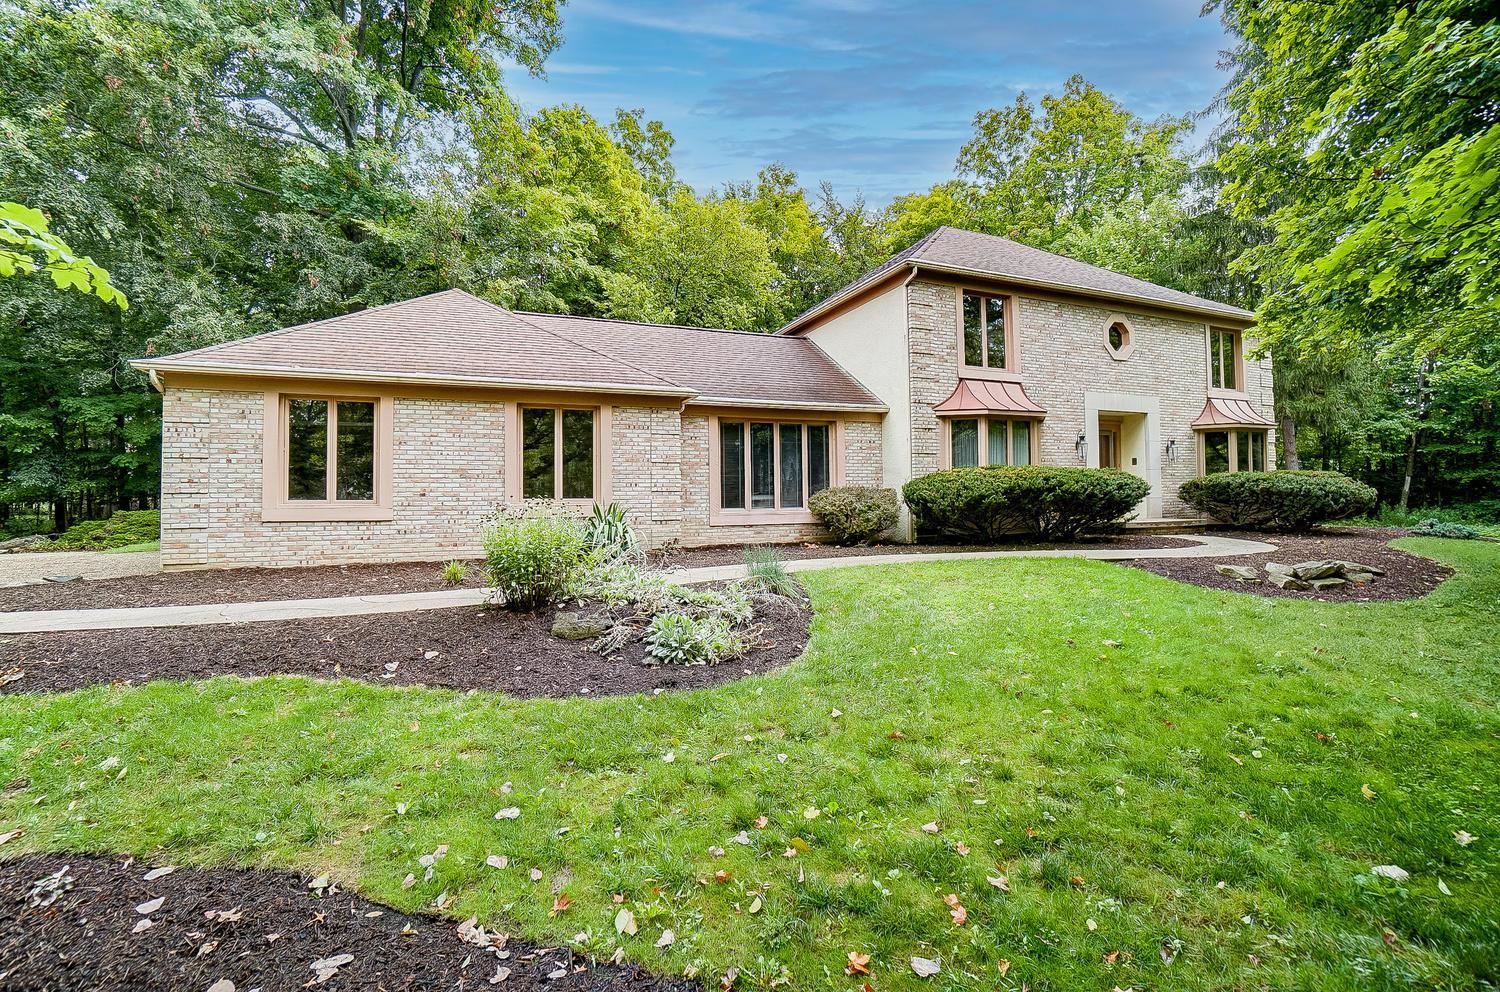 Photo of 4770 Cascade Drive, Powell, OH 43065 (MLS # 221029231)